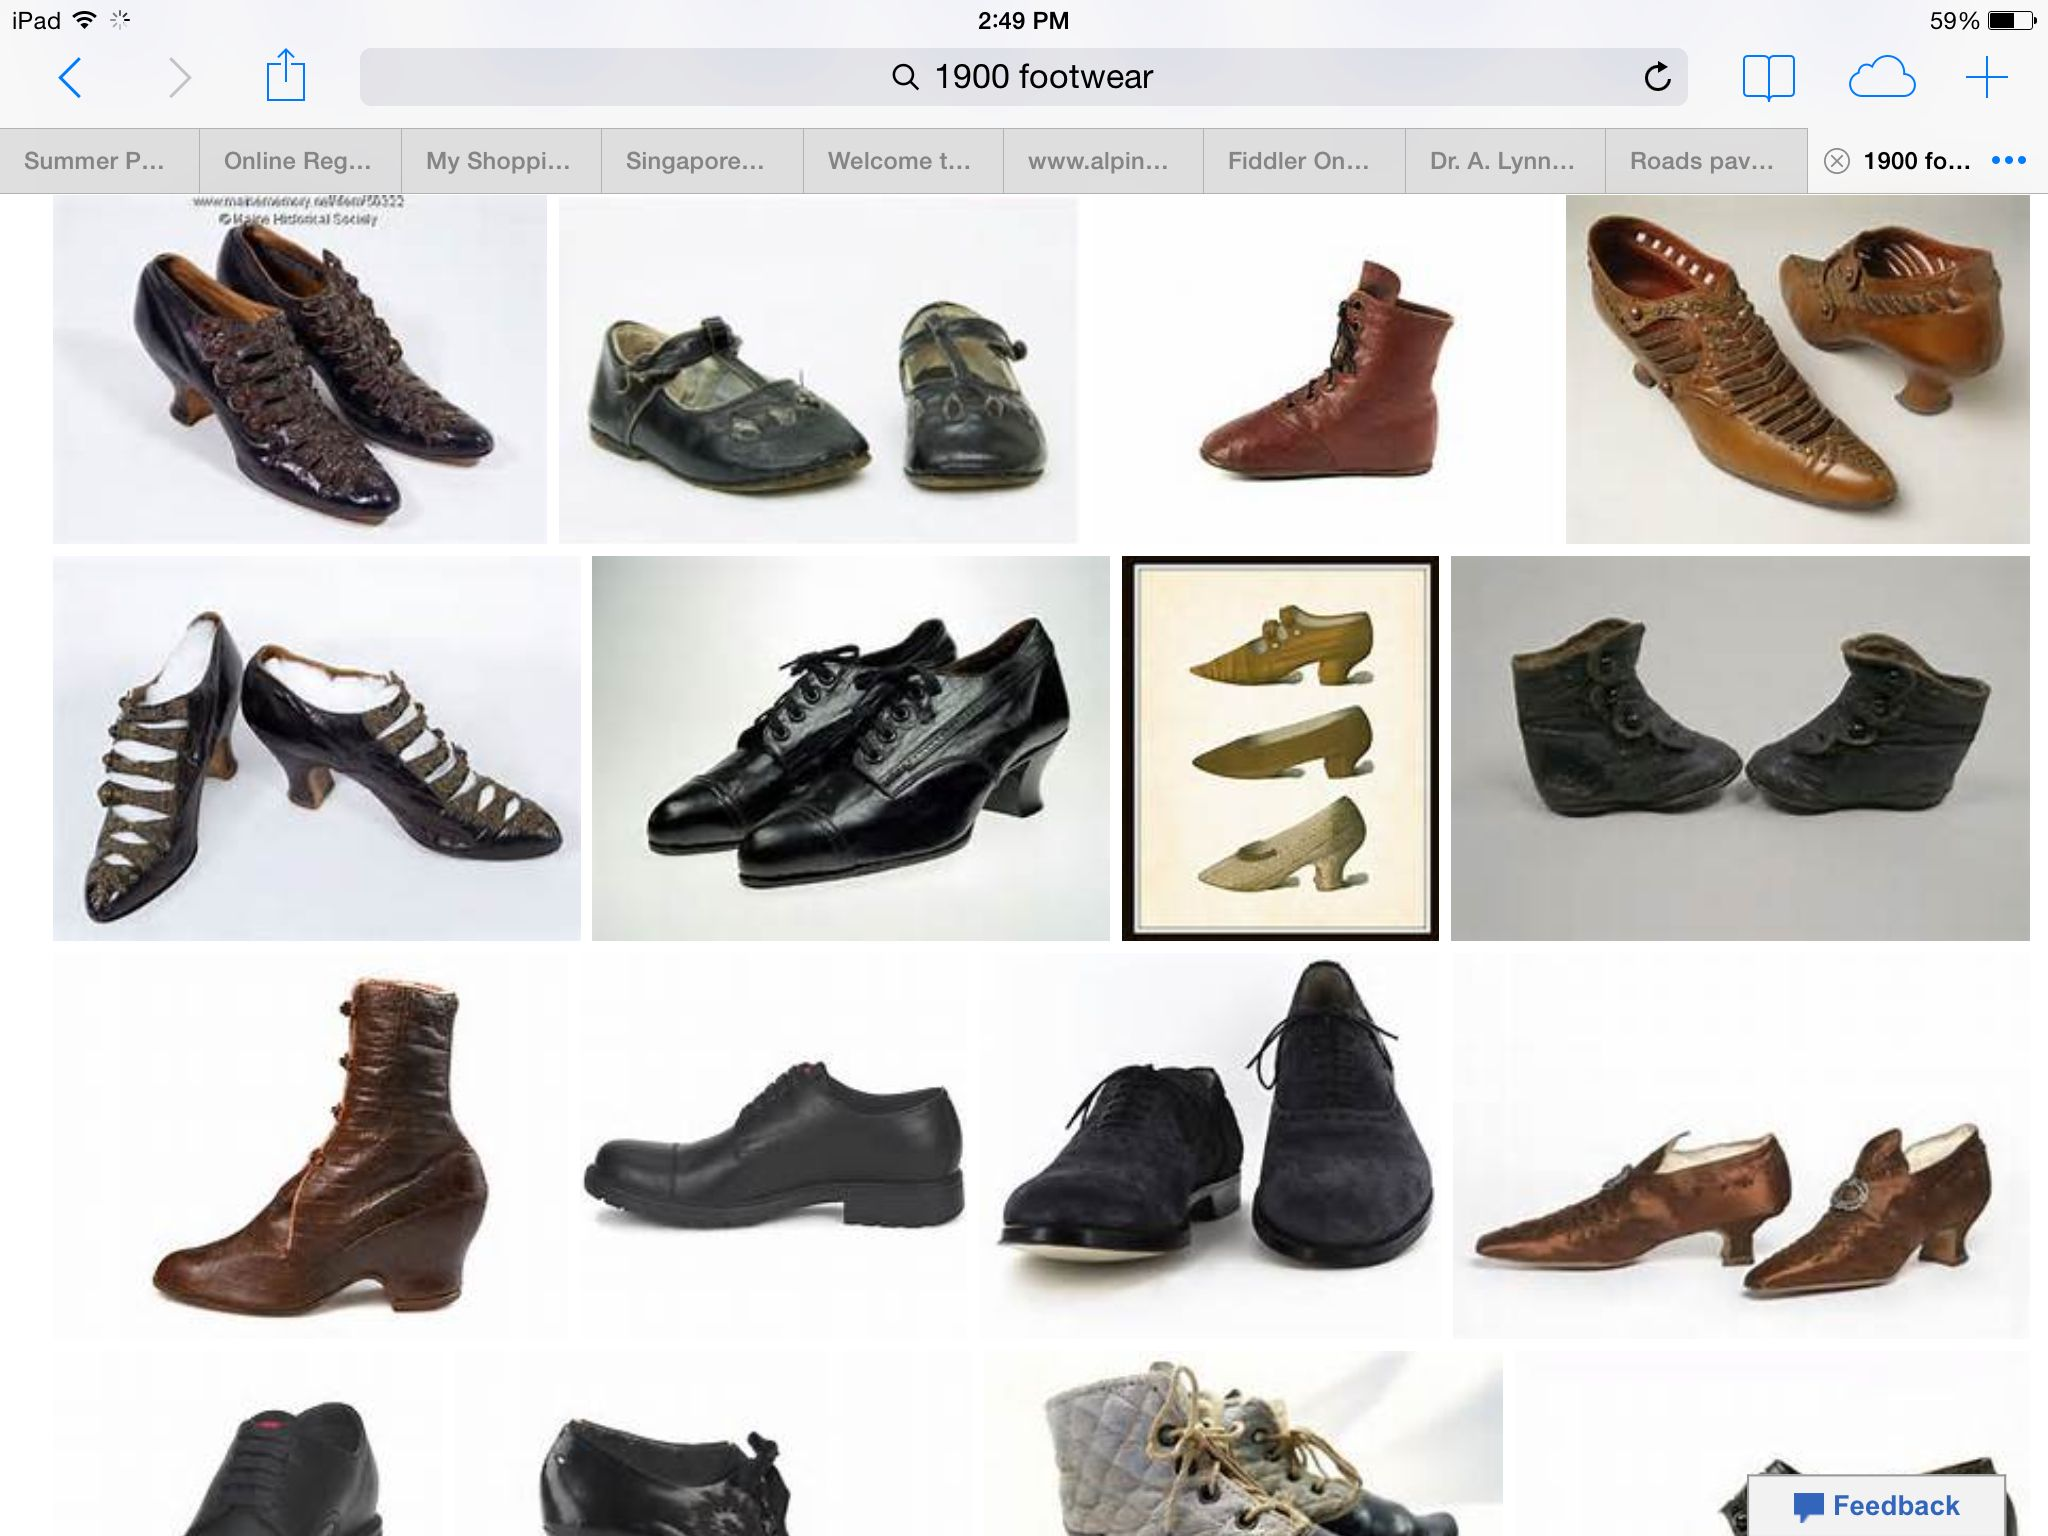 Historical Shoes Historical Shoes Shoes Fiddler On The Roof